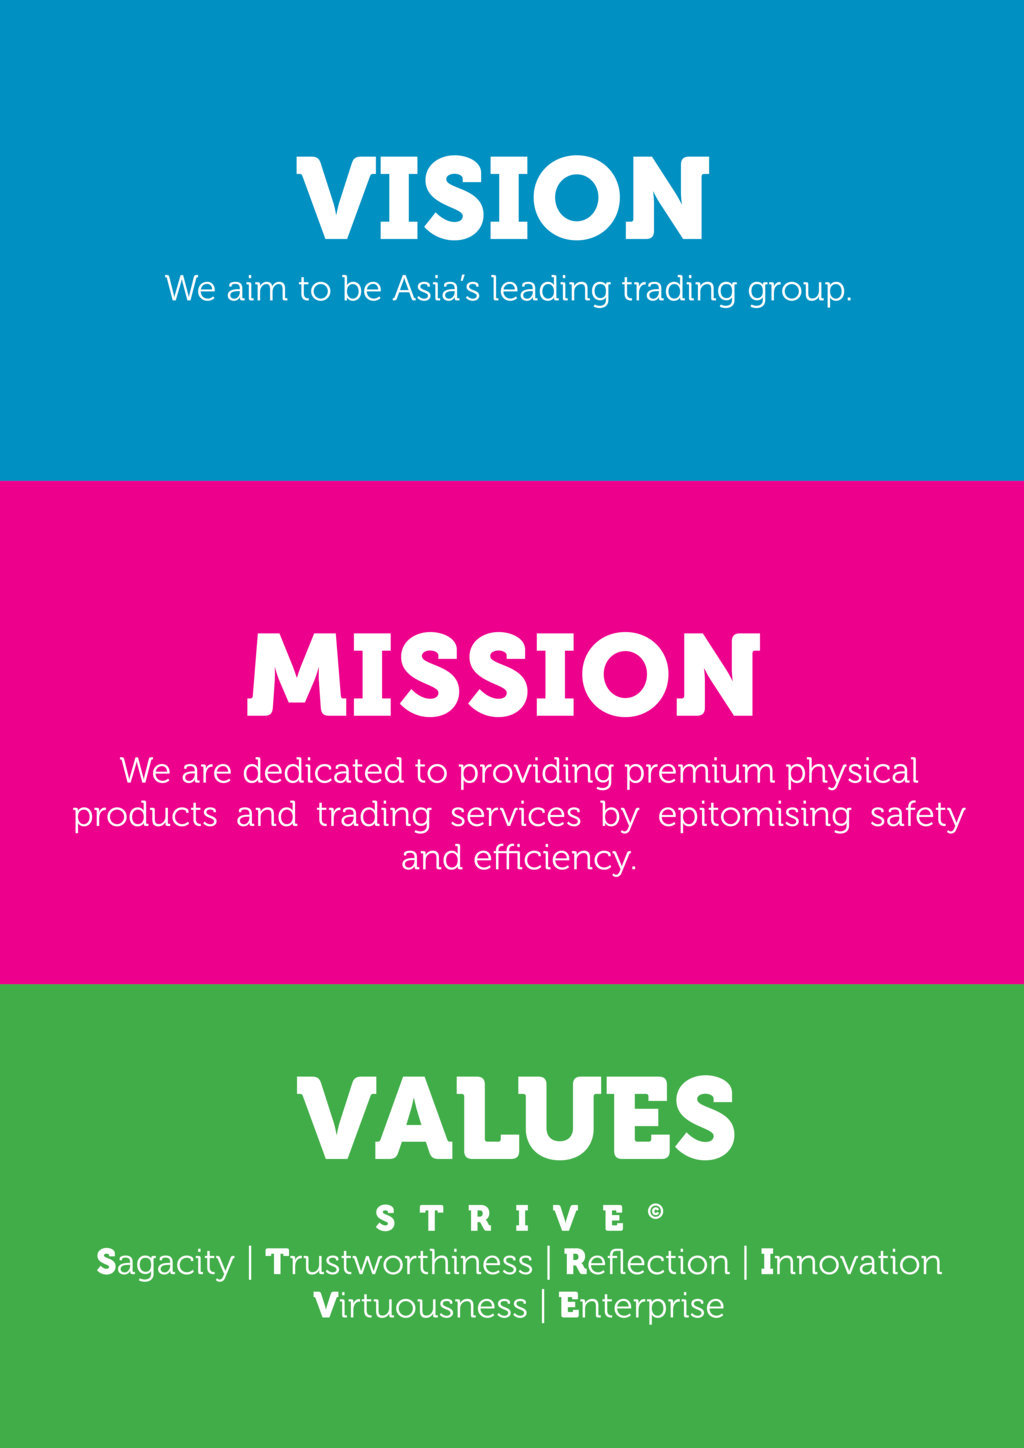 vision, mission and values guiding principles - strategic business